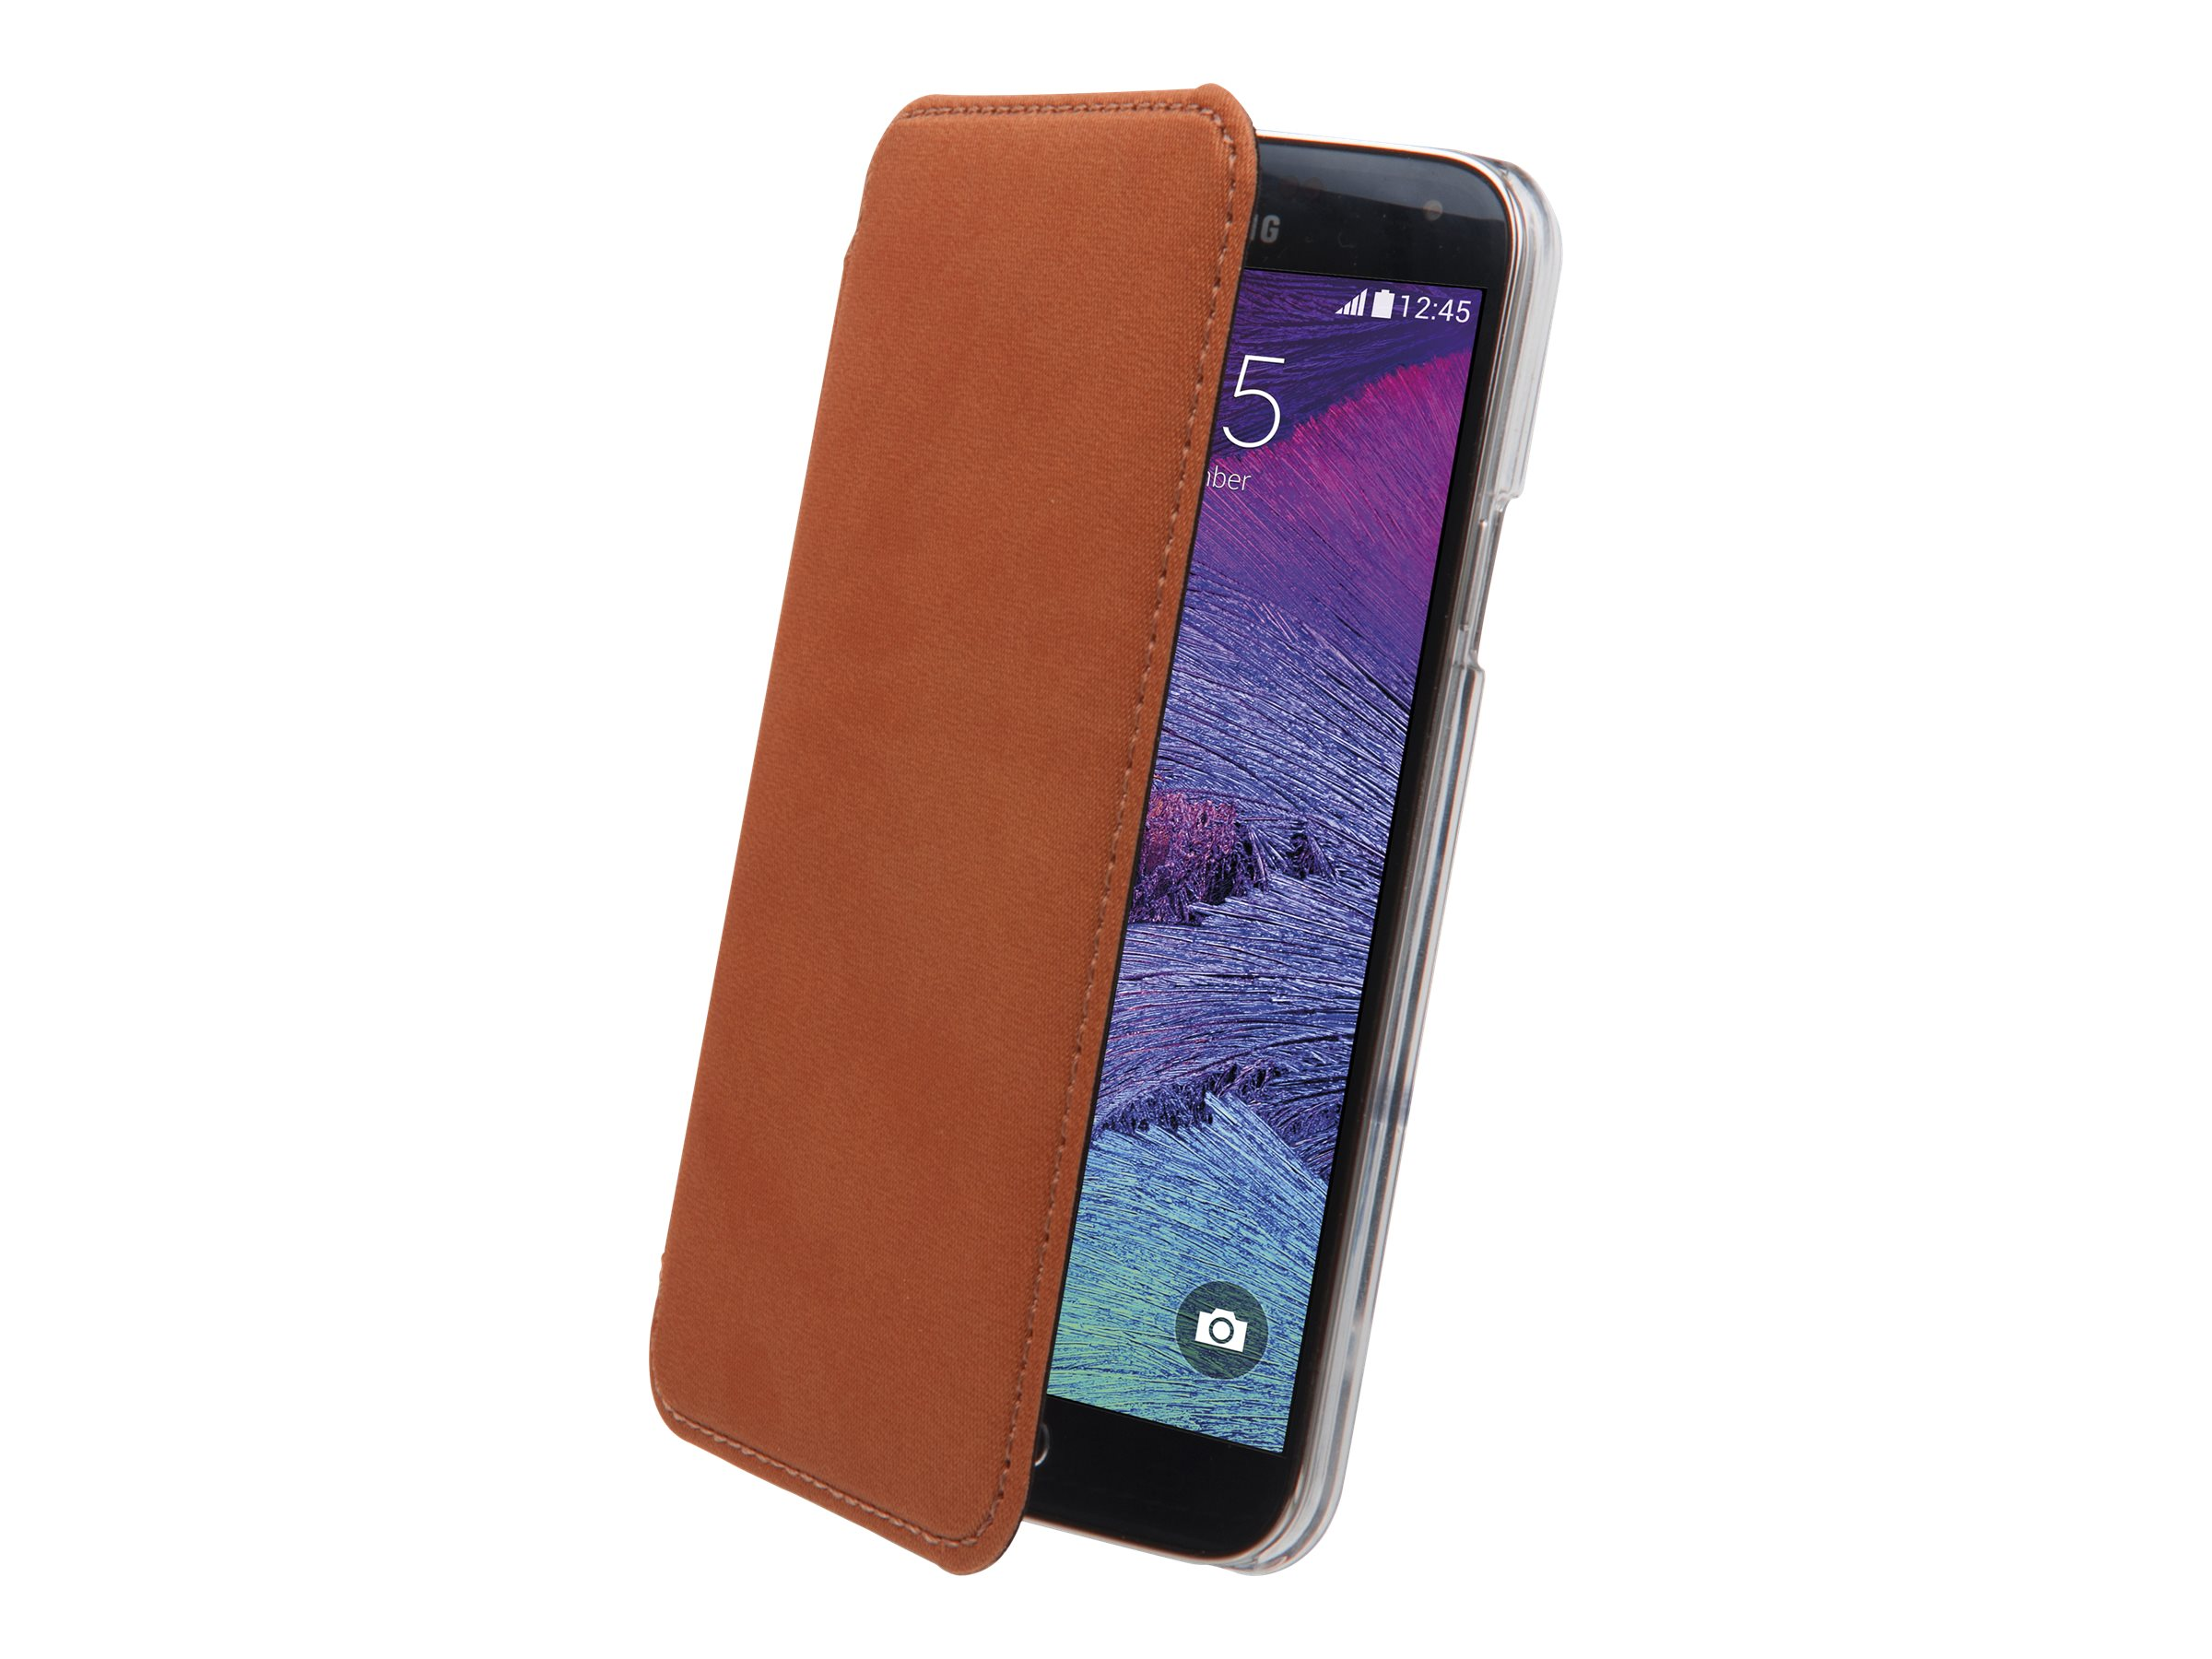 Muvit Made in Paris Crystal Folio - Protection à rabat pour Samsung GALAXY Note 4 - royal orange